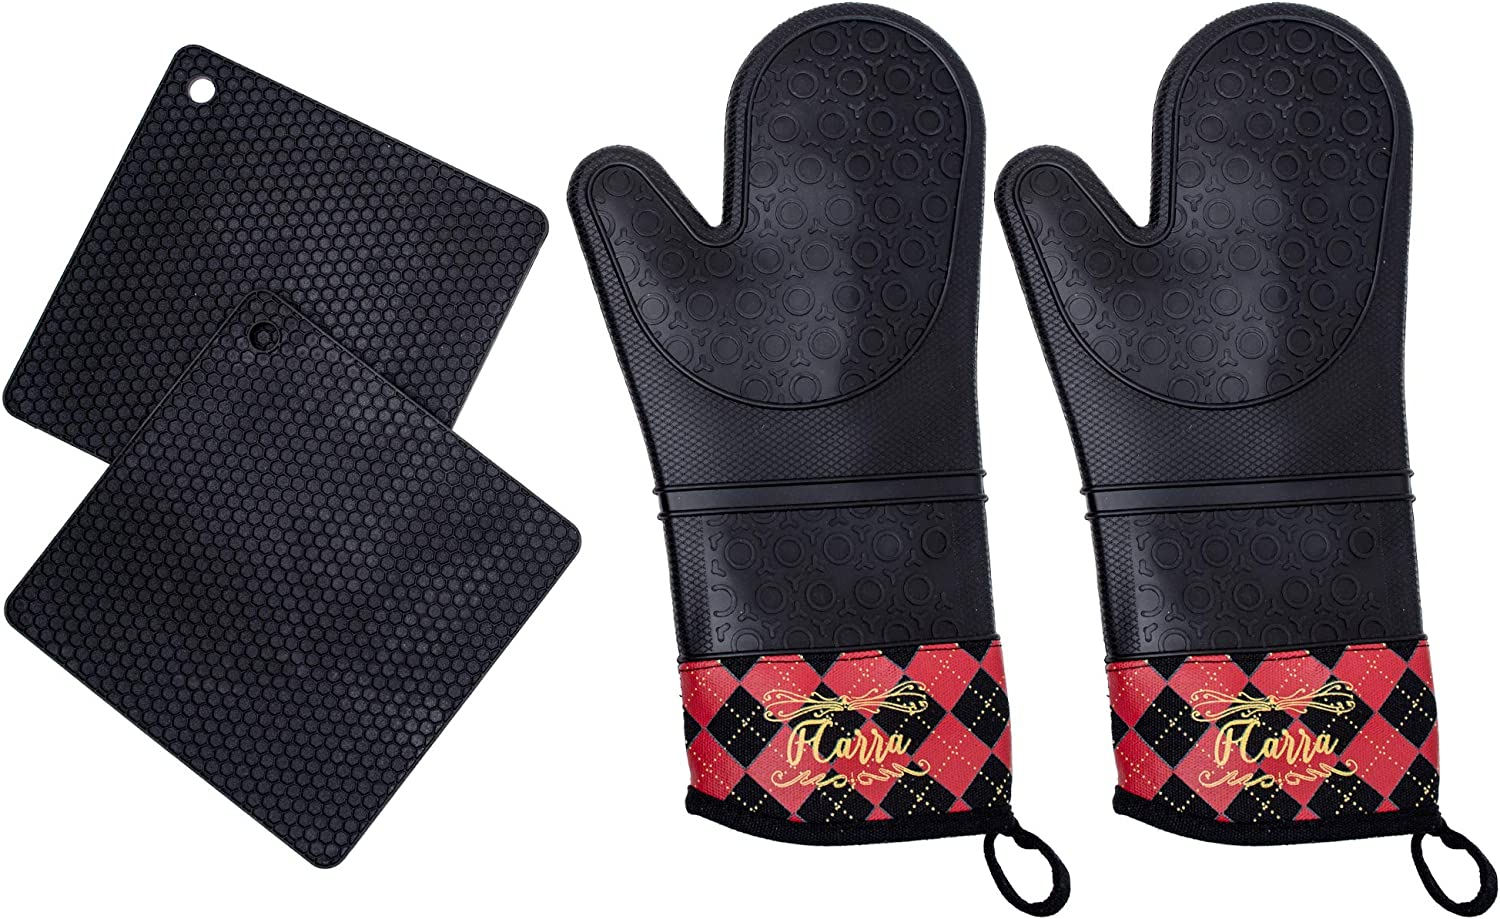 FCARRA Premium Silicone Oven Mitts and Potholders Heat Resistant 4-Piece Set Non Slip Grip-Extra Long Length